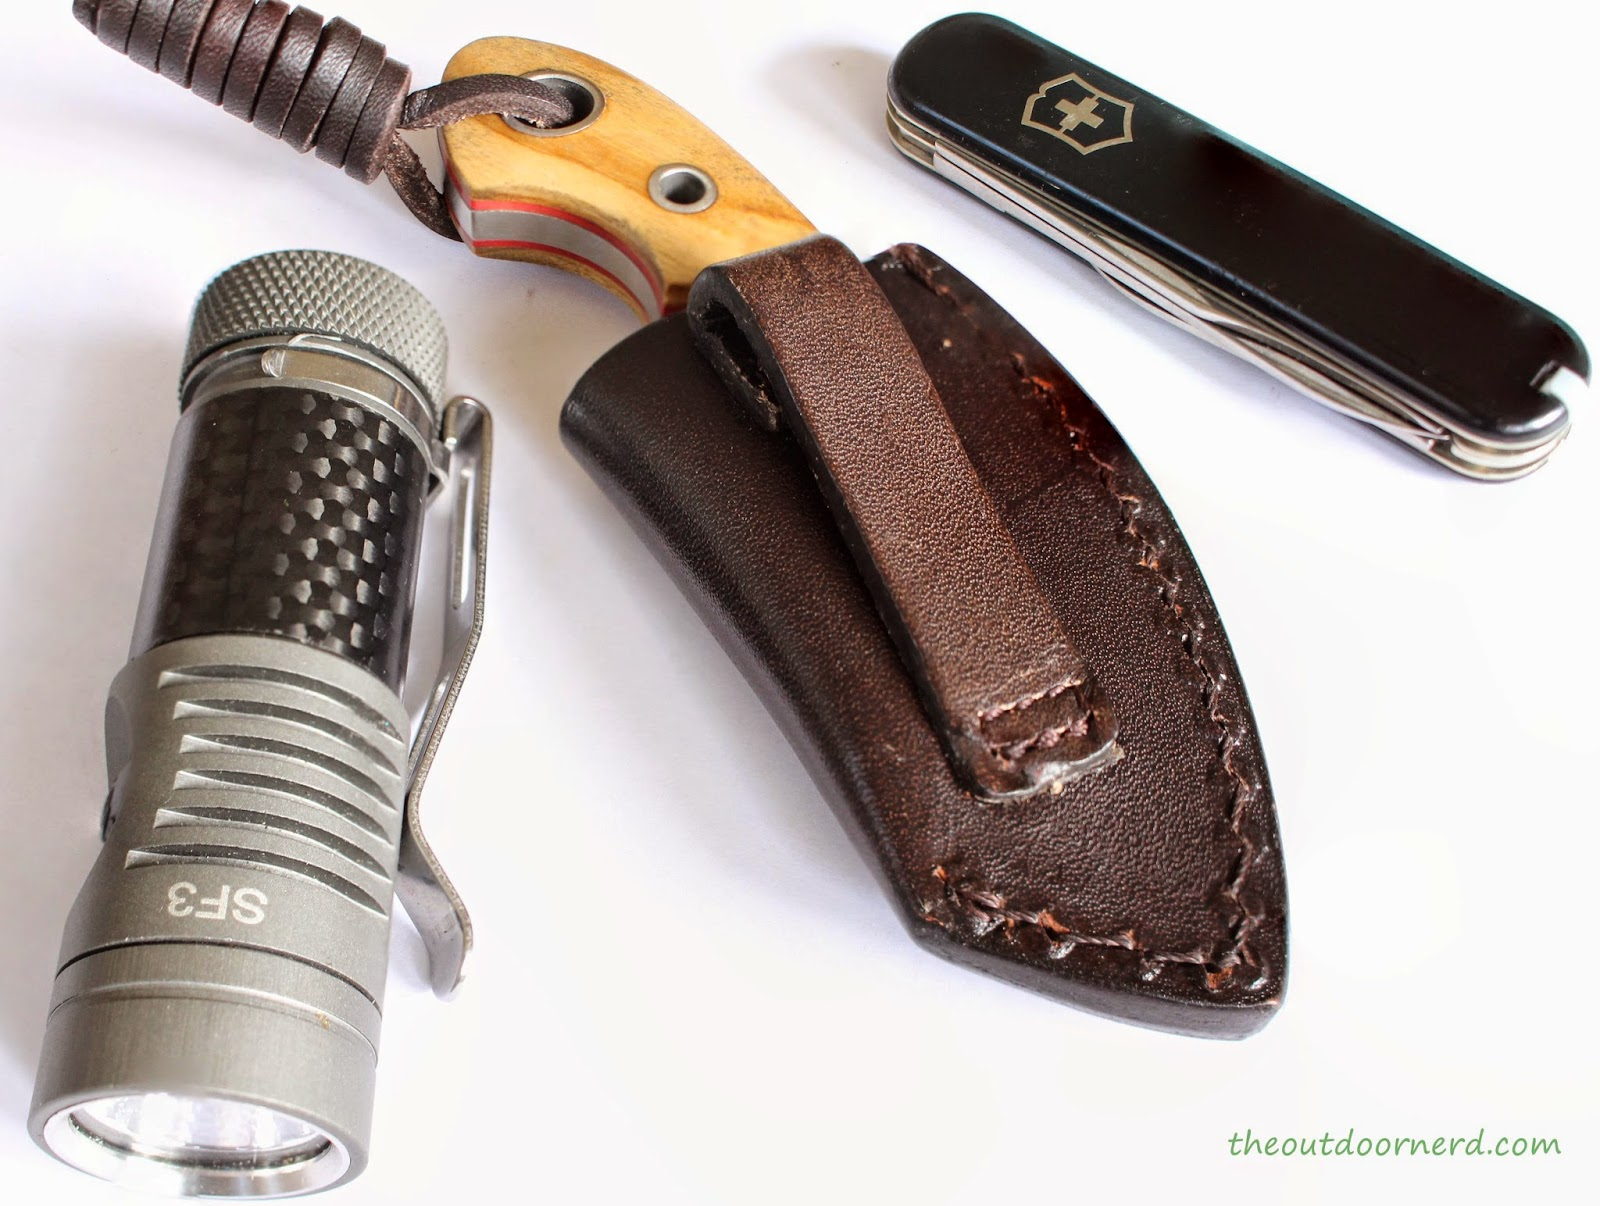 Boker Gnome Plus EDC Fixed Blade Knife: Product Link